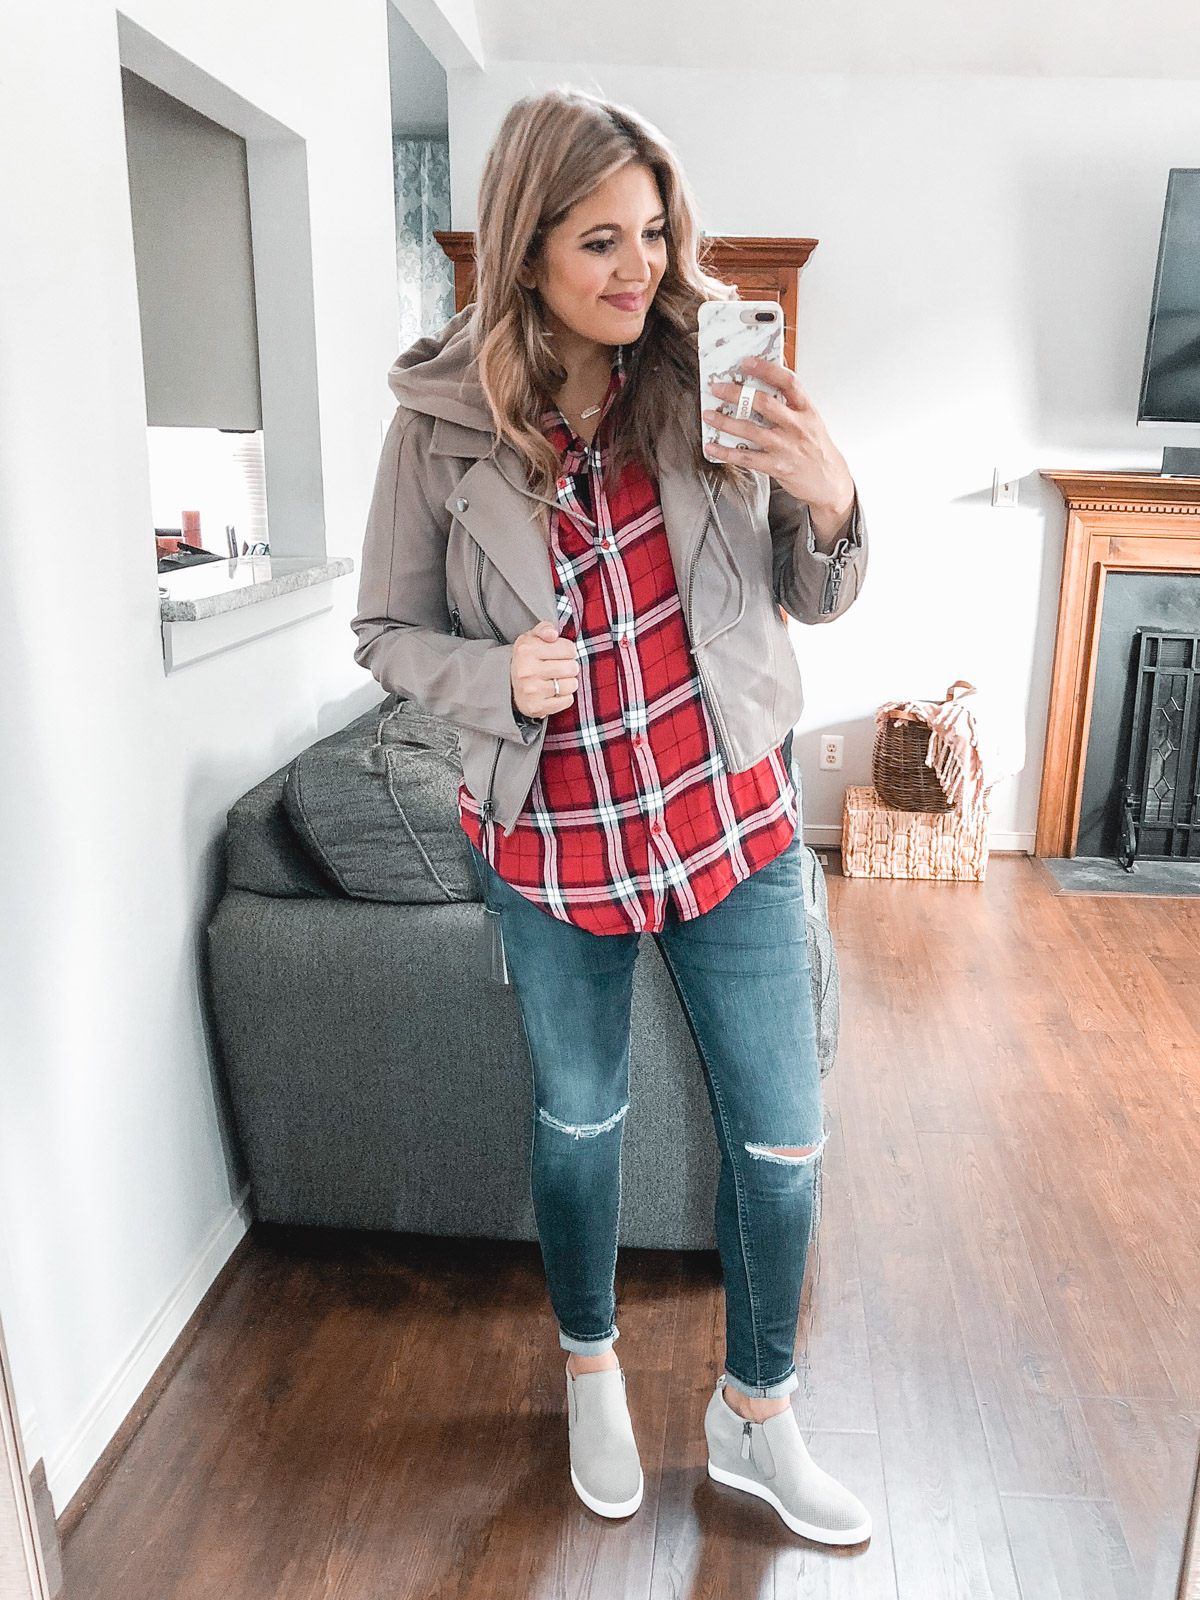 casual plaid top outfits moms - Need plaid top outfit ideas? I'm sharing one $31 plaid top styled 15 different ways on bylaurenm.com!